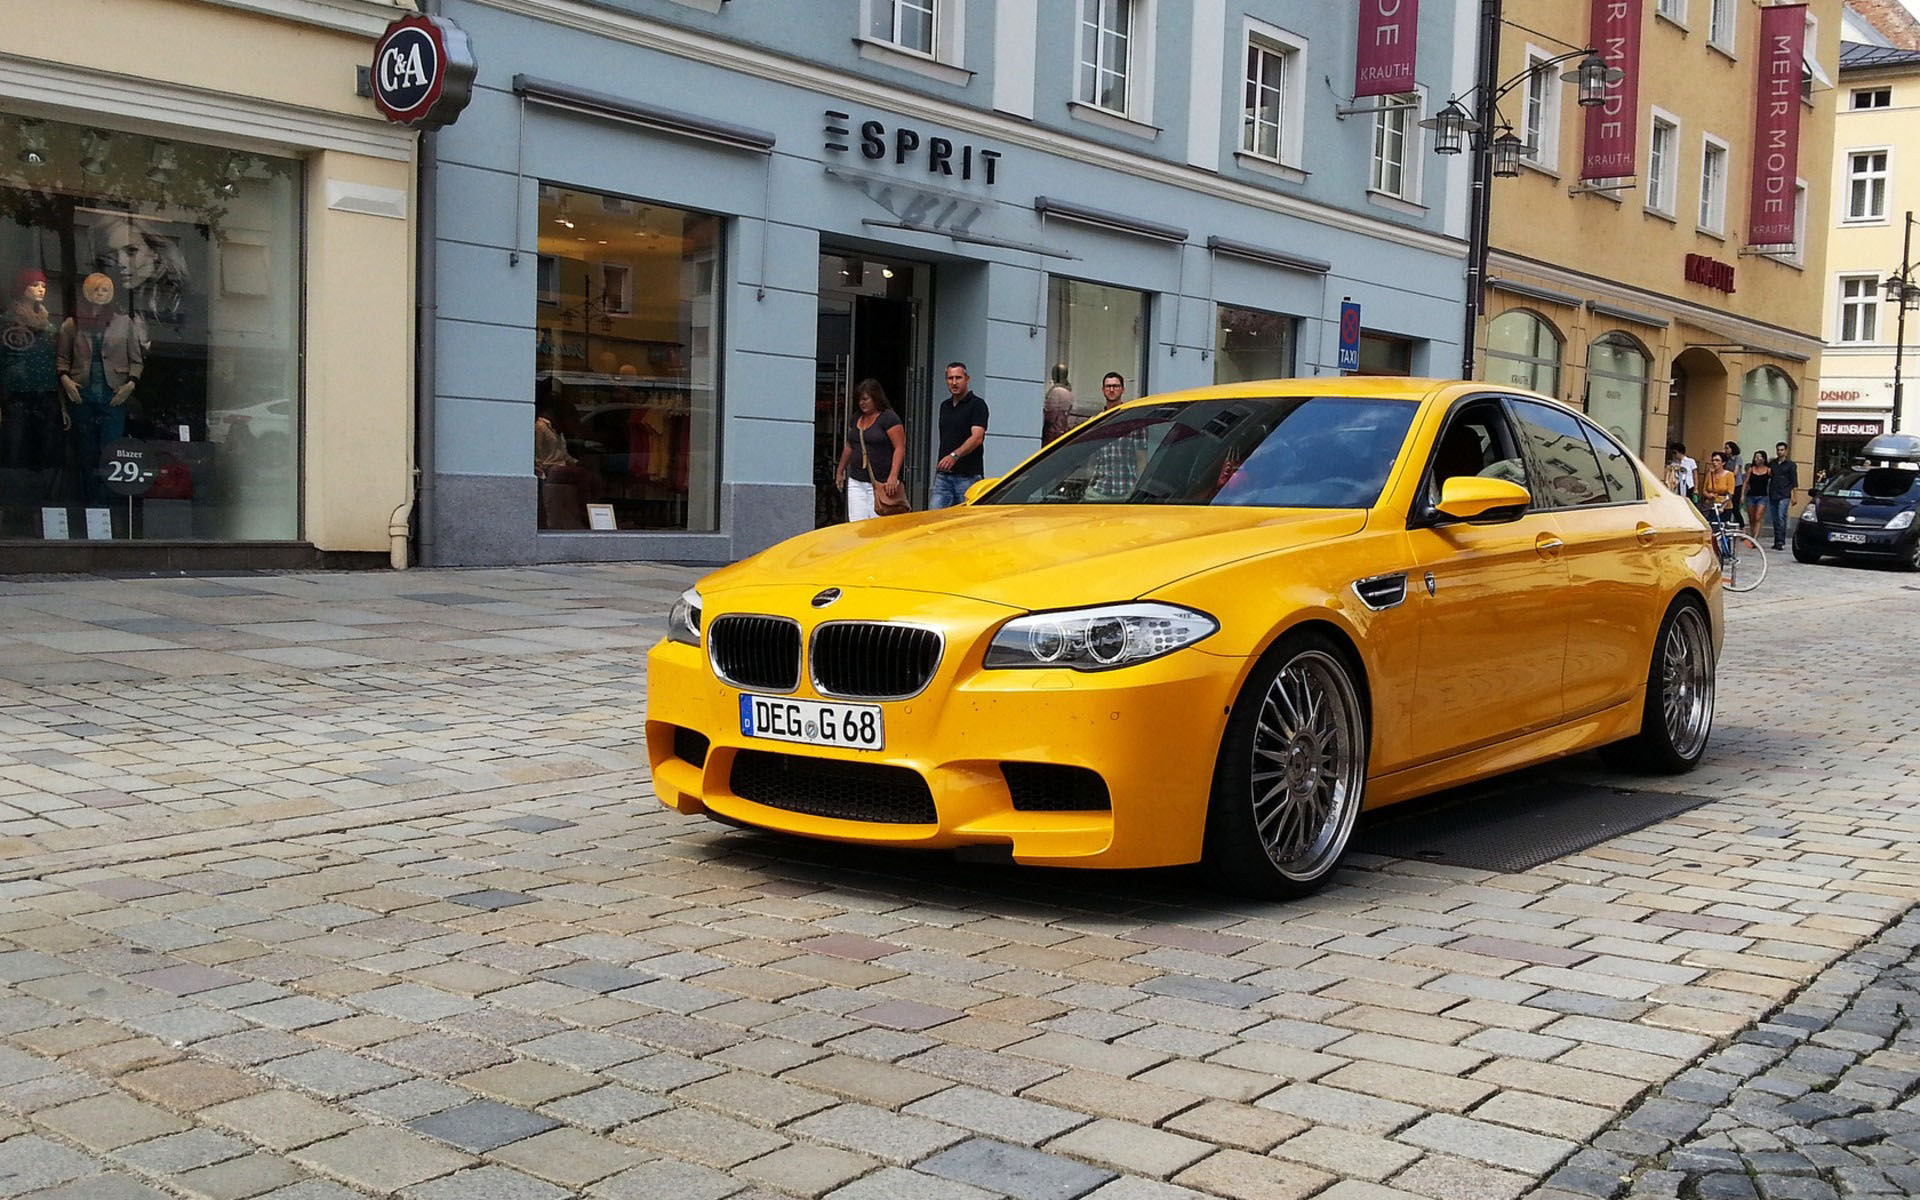 BMW F10 M5 wallpaper downloads High resolution images for 1920x1200